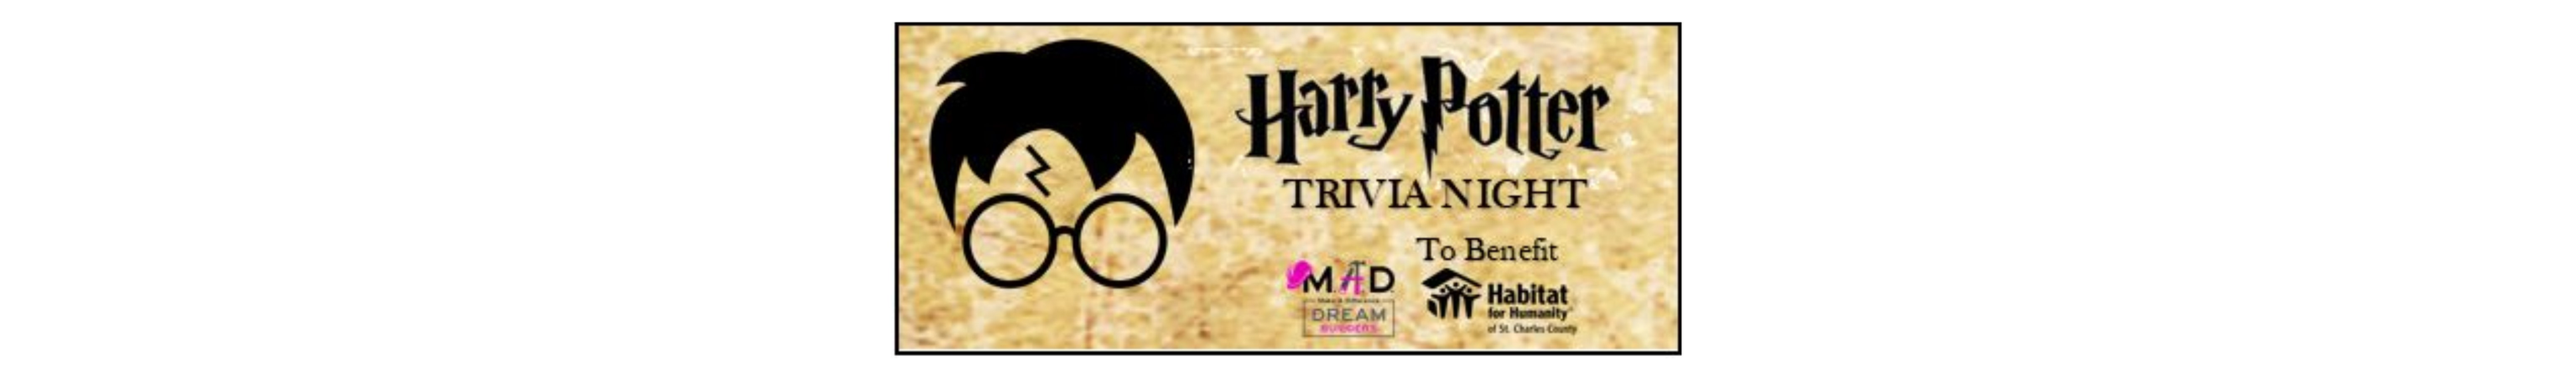 MAD Dream Builders Harry Potter Trivia 2019